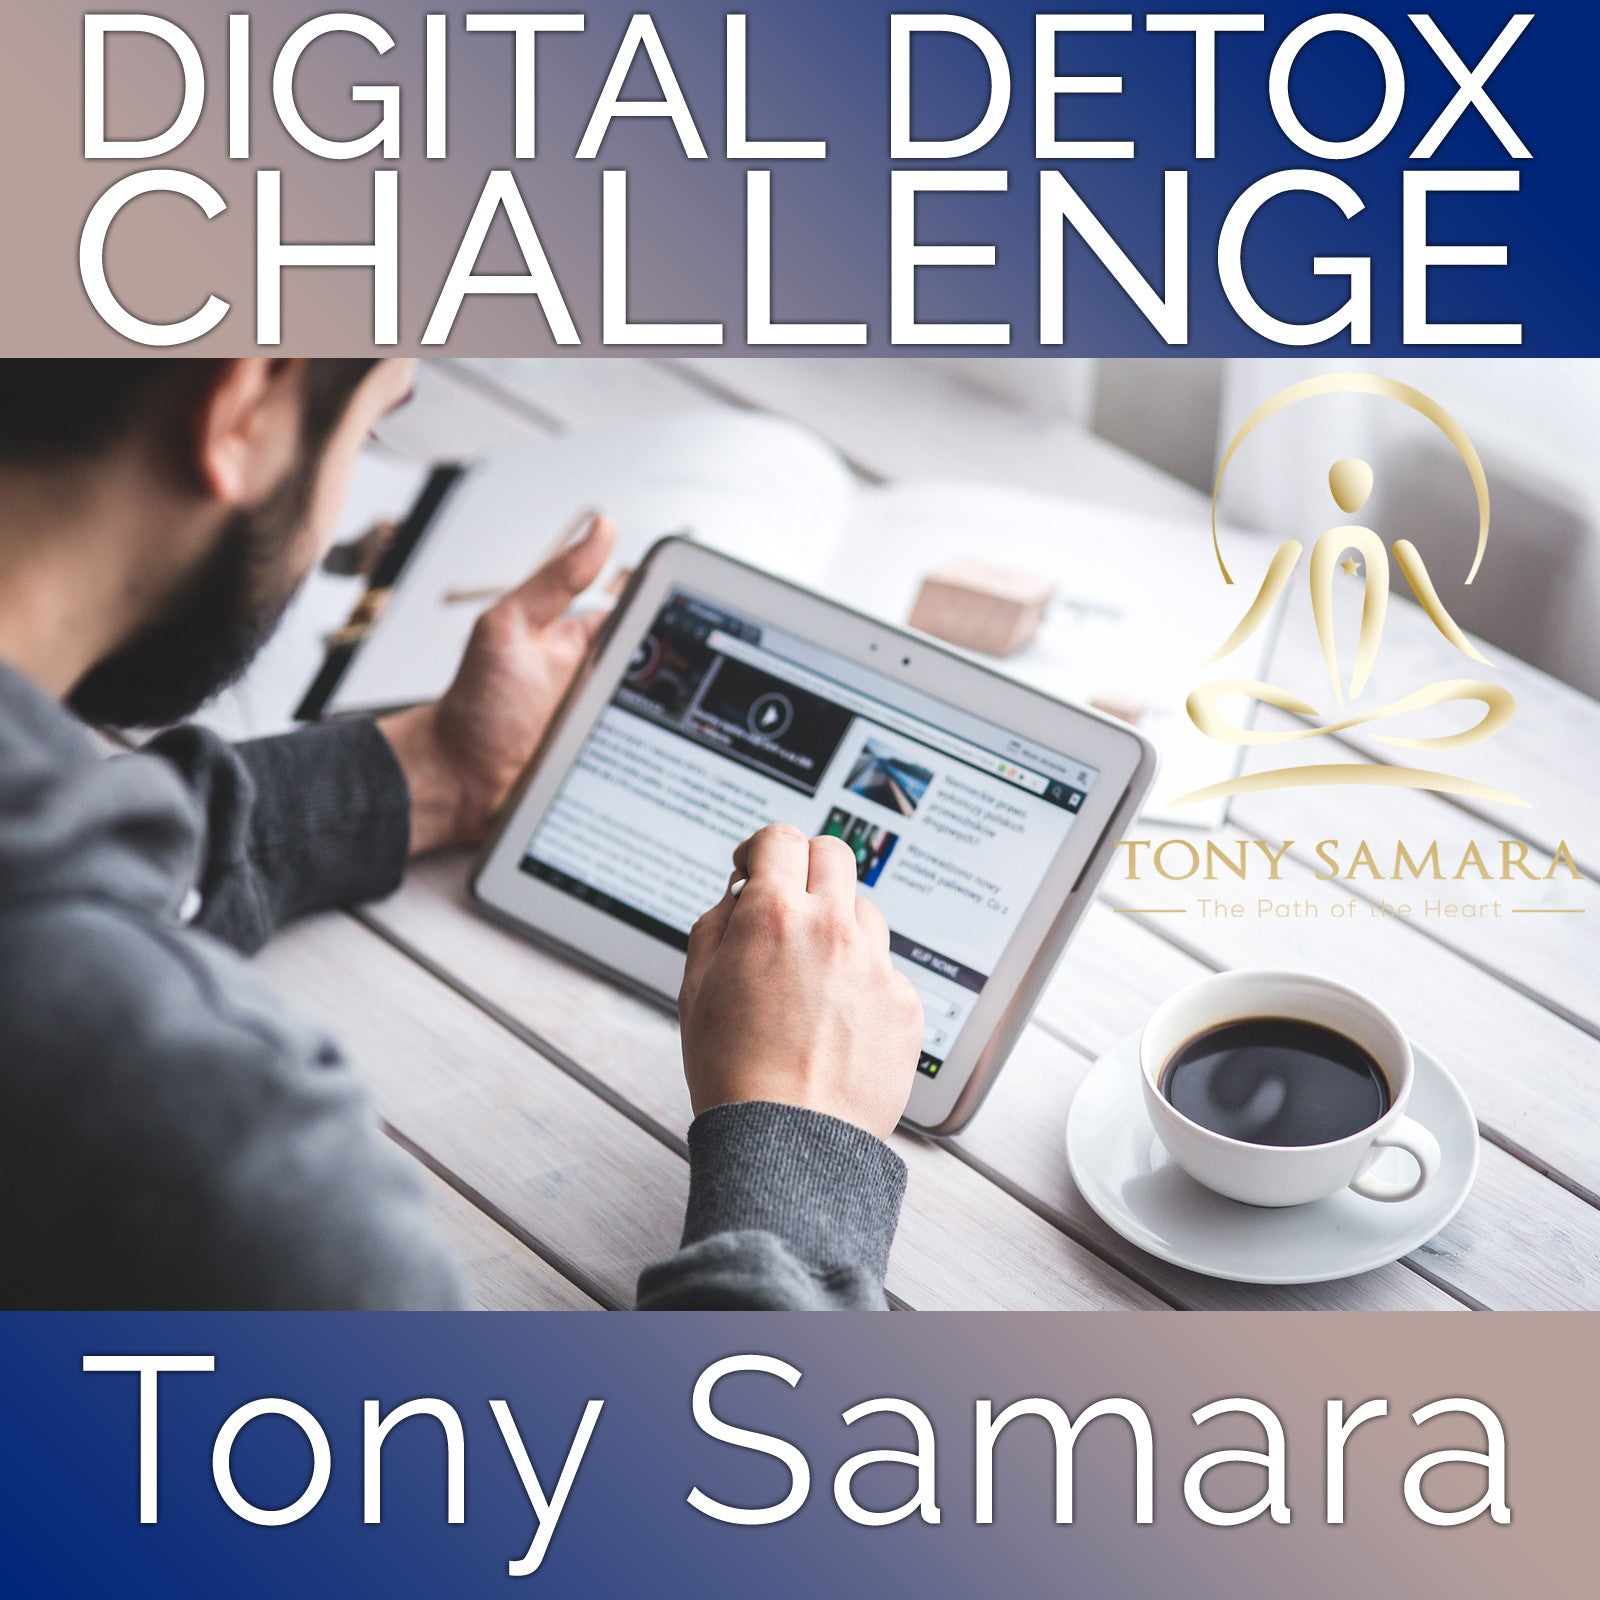 Digital Detox Challenge (MP3 Audio Download) - Tony Samara Meditation